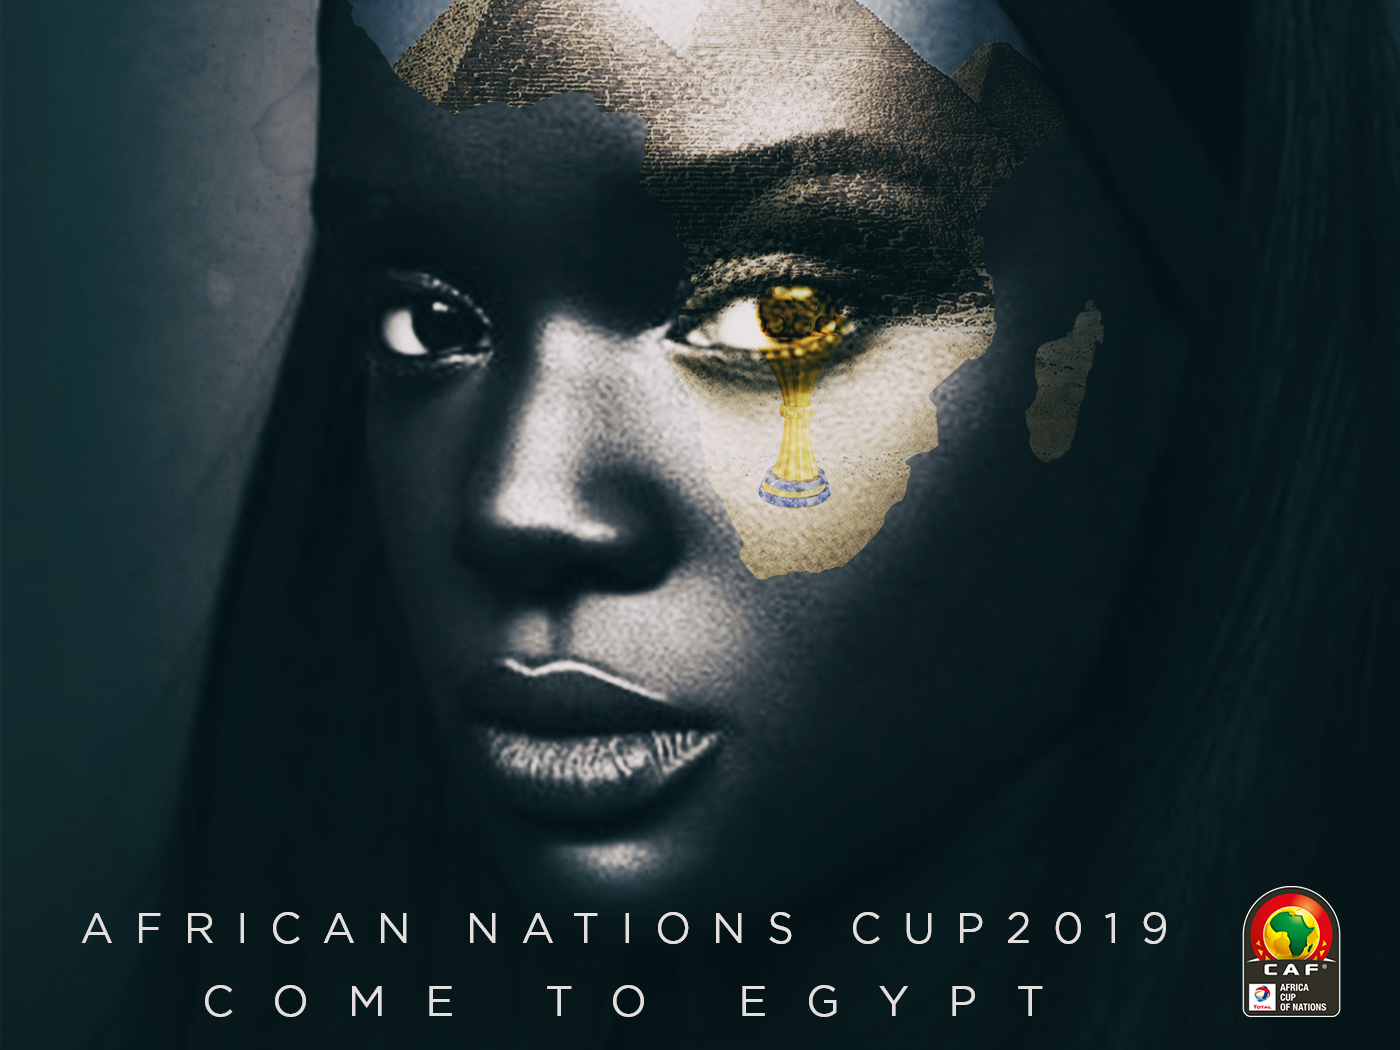 African cup of nations 2019 COME TO EGYPT 2019 egypt nations cup african